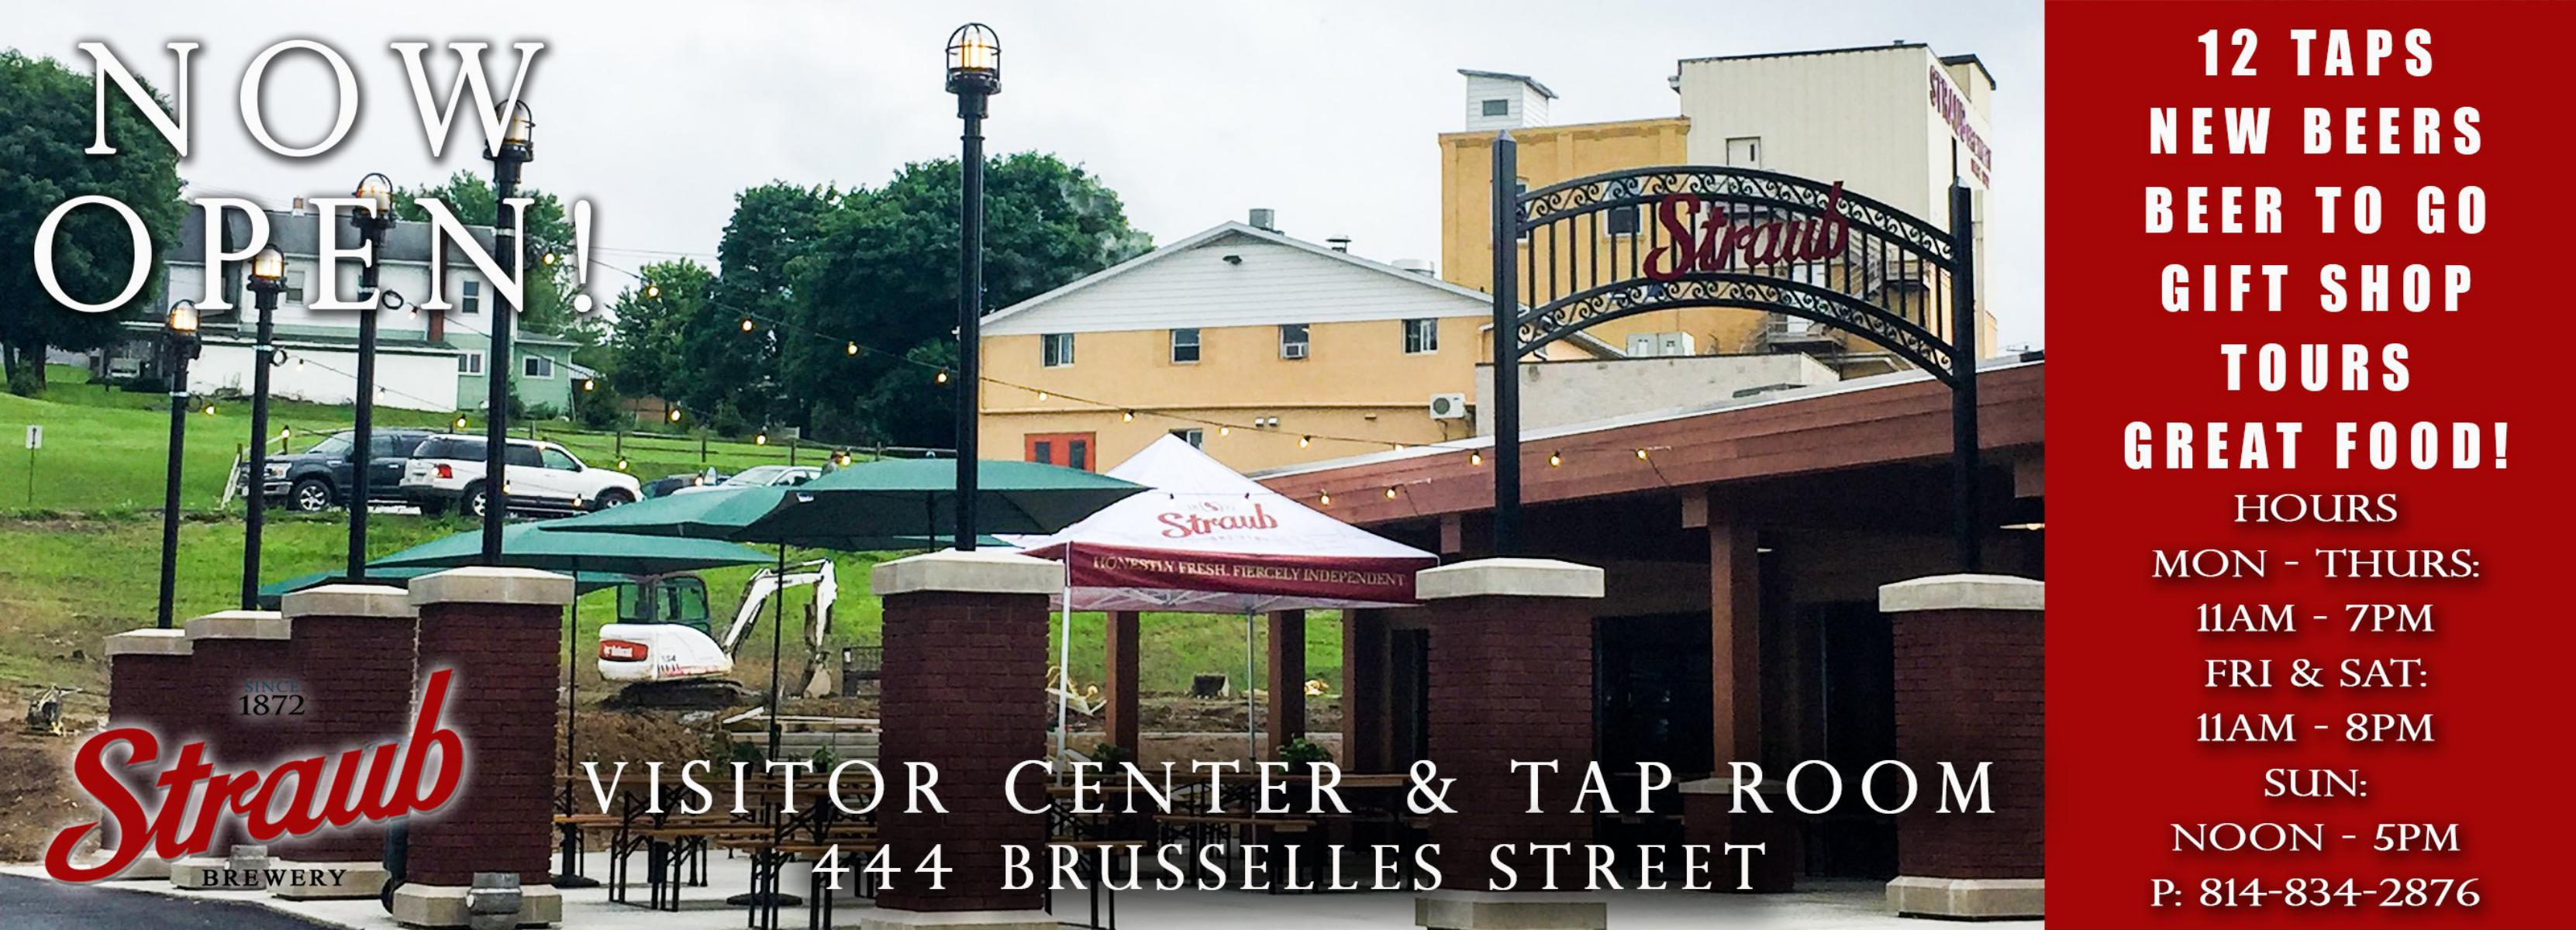 Straub Brewery: Great things are on tap in the Pennsylvania